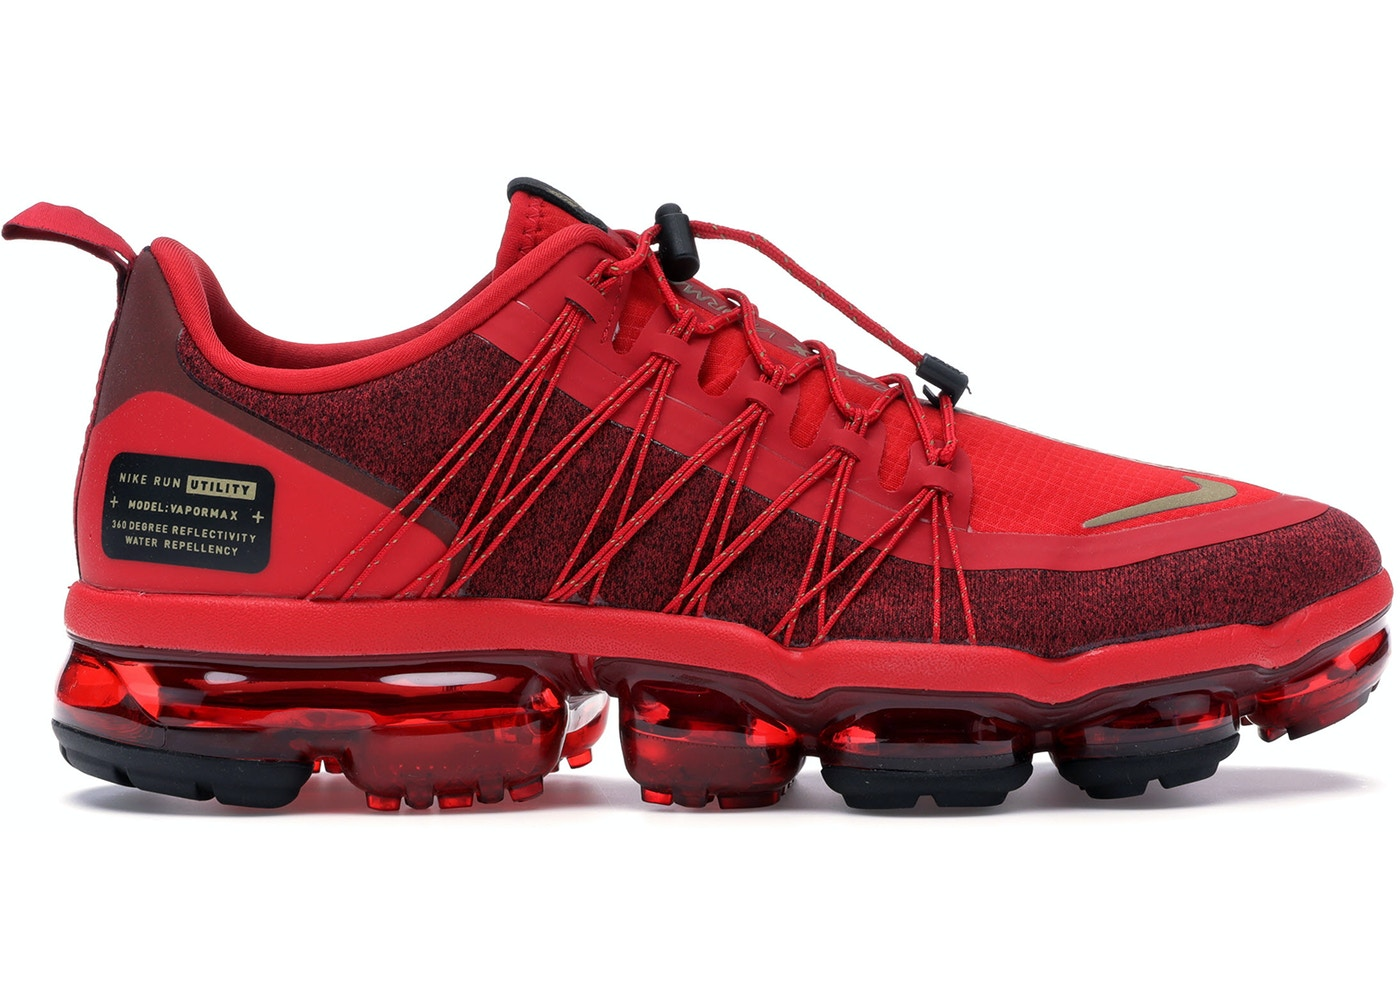 Air Vapormax Run Utility Chinese New Year 2019 Bq7039 600